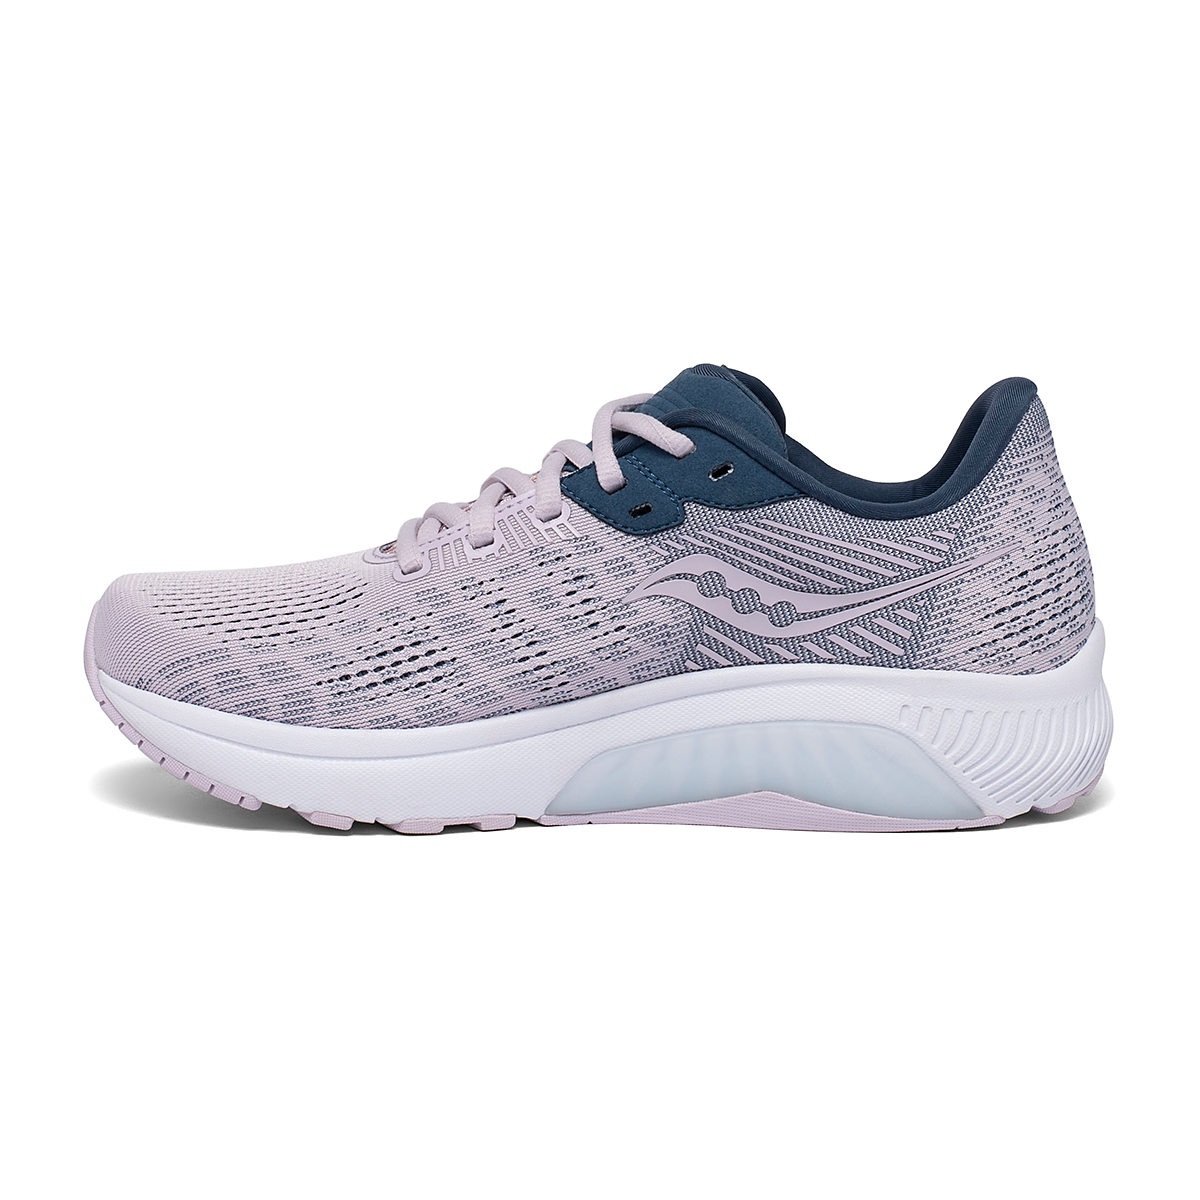 Women's Saucony Guide 14 Running Shoe, , large, image 3